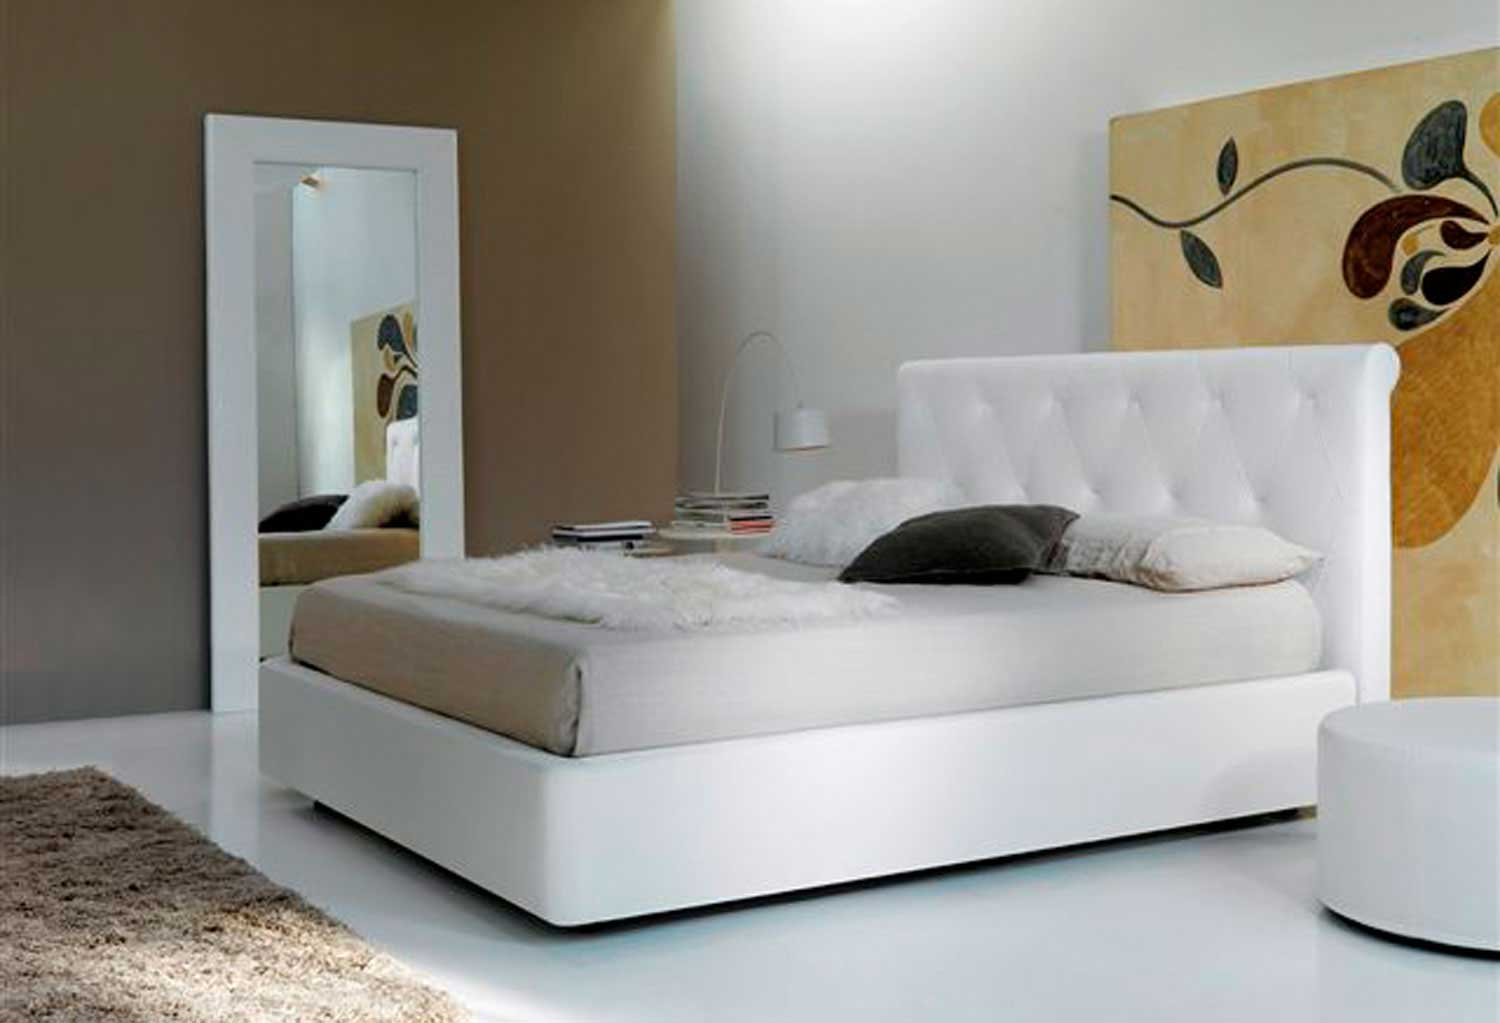 bett 120 cm breit best bett x cm mit nako weiss anthrazit woody details with bett 120 cm breit. Black Bedroom Furniture Sets. Home Design Ideas